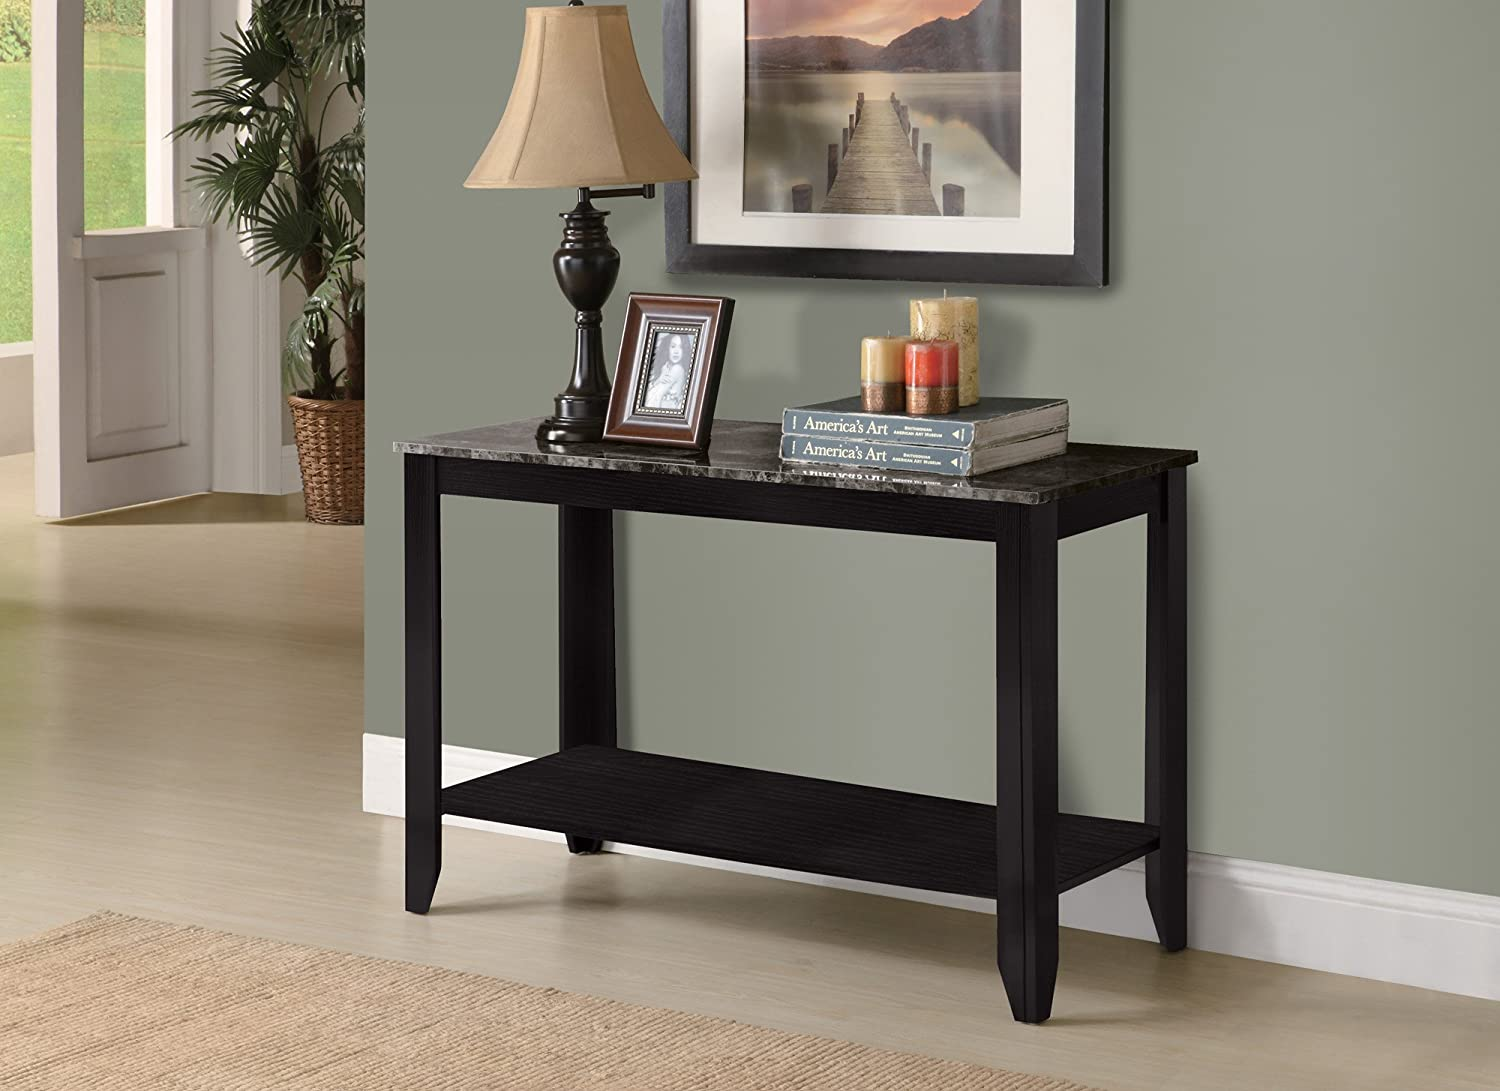 Amazon.com: Monarch Specialties Dark Taupe Reclaimed-Look Sofa Console Table:  Kitchen & Dining - Amazon.com: Monarch Specialties Dark Taupe Reclaimed-Look Sofa